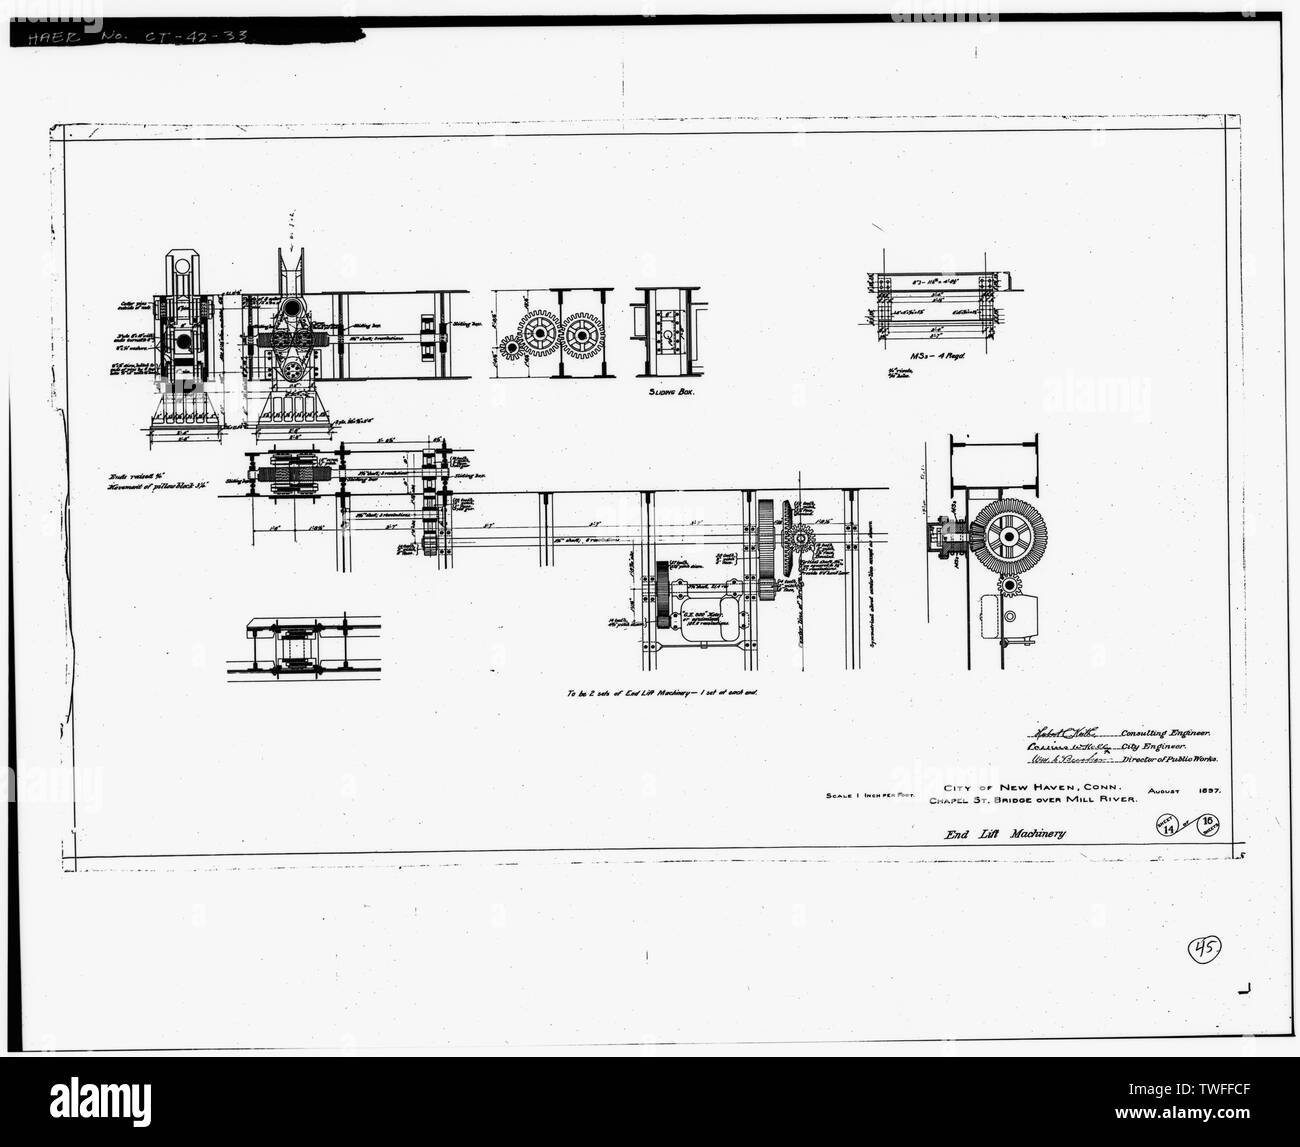 PLAN SHEET - END LIFT MACHINERY (1897) - Chapel Street Swing Bridge, Spanning Mill River on Chapel Street, New Haven, New Haven County, CT - Stock Image